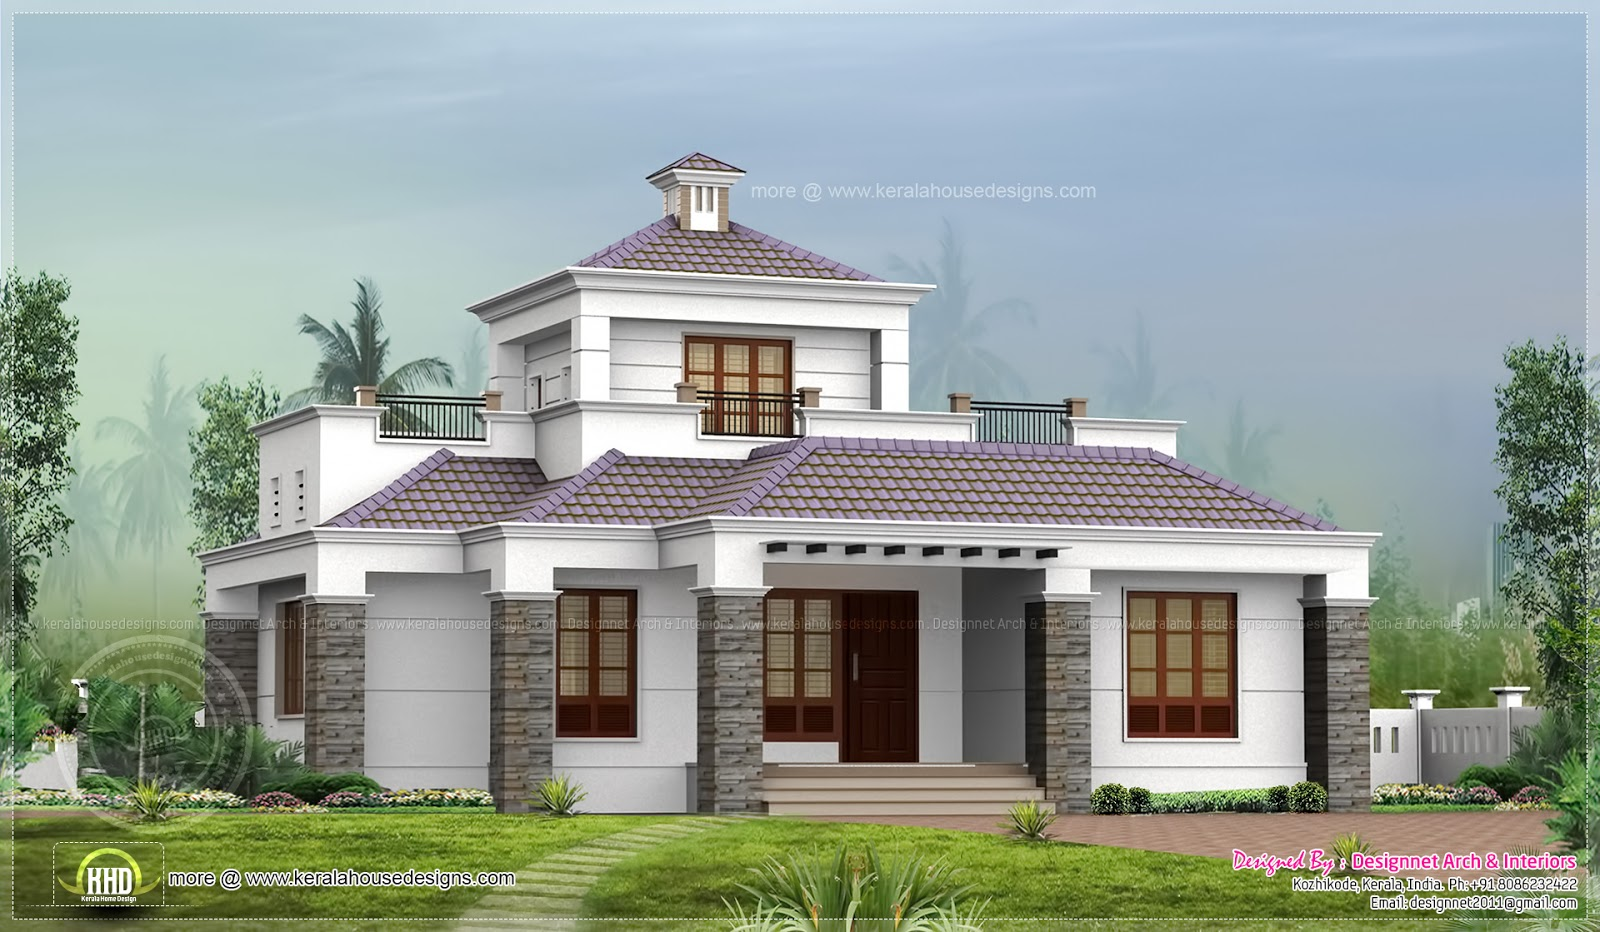 Single floor home with stair room in 1500 sq ft kerala for Single floor house plans